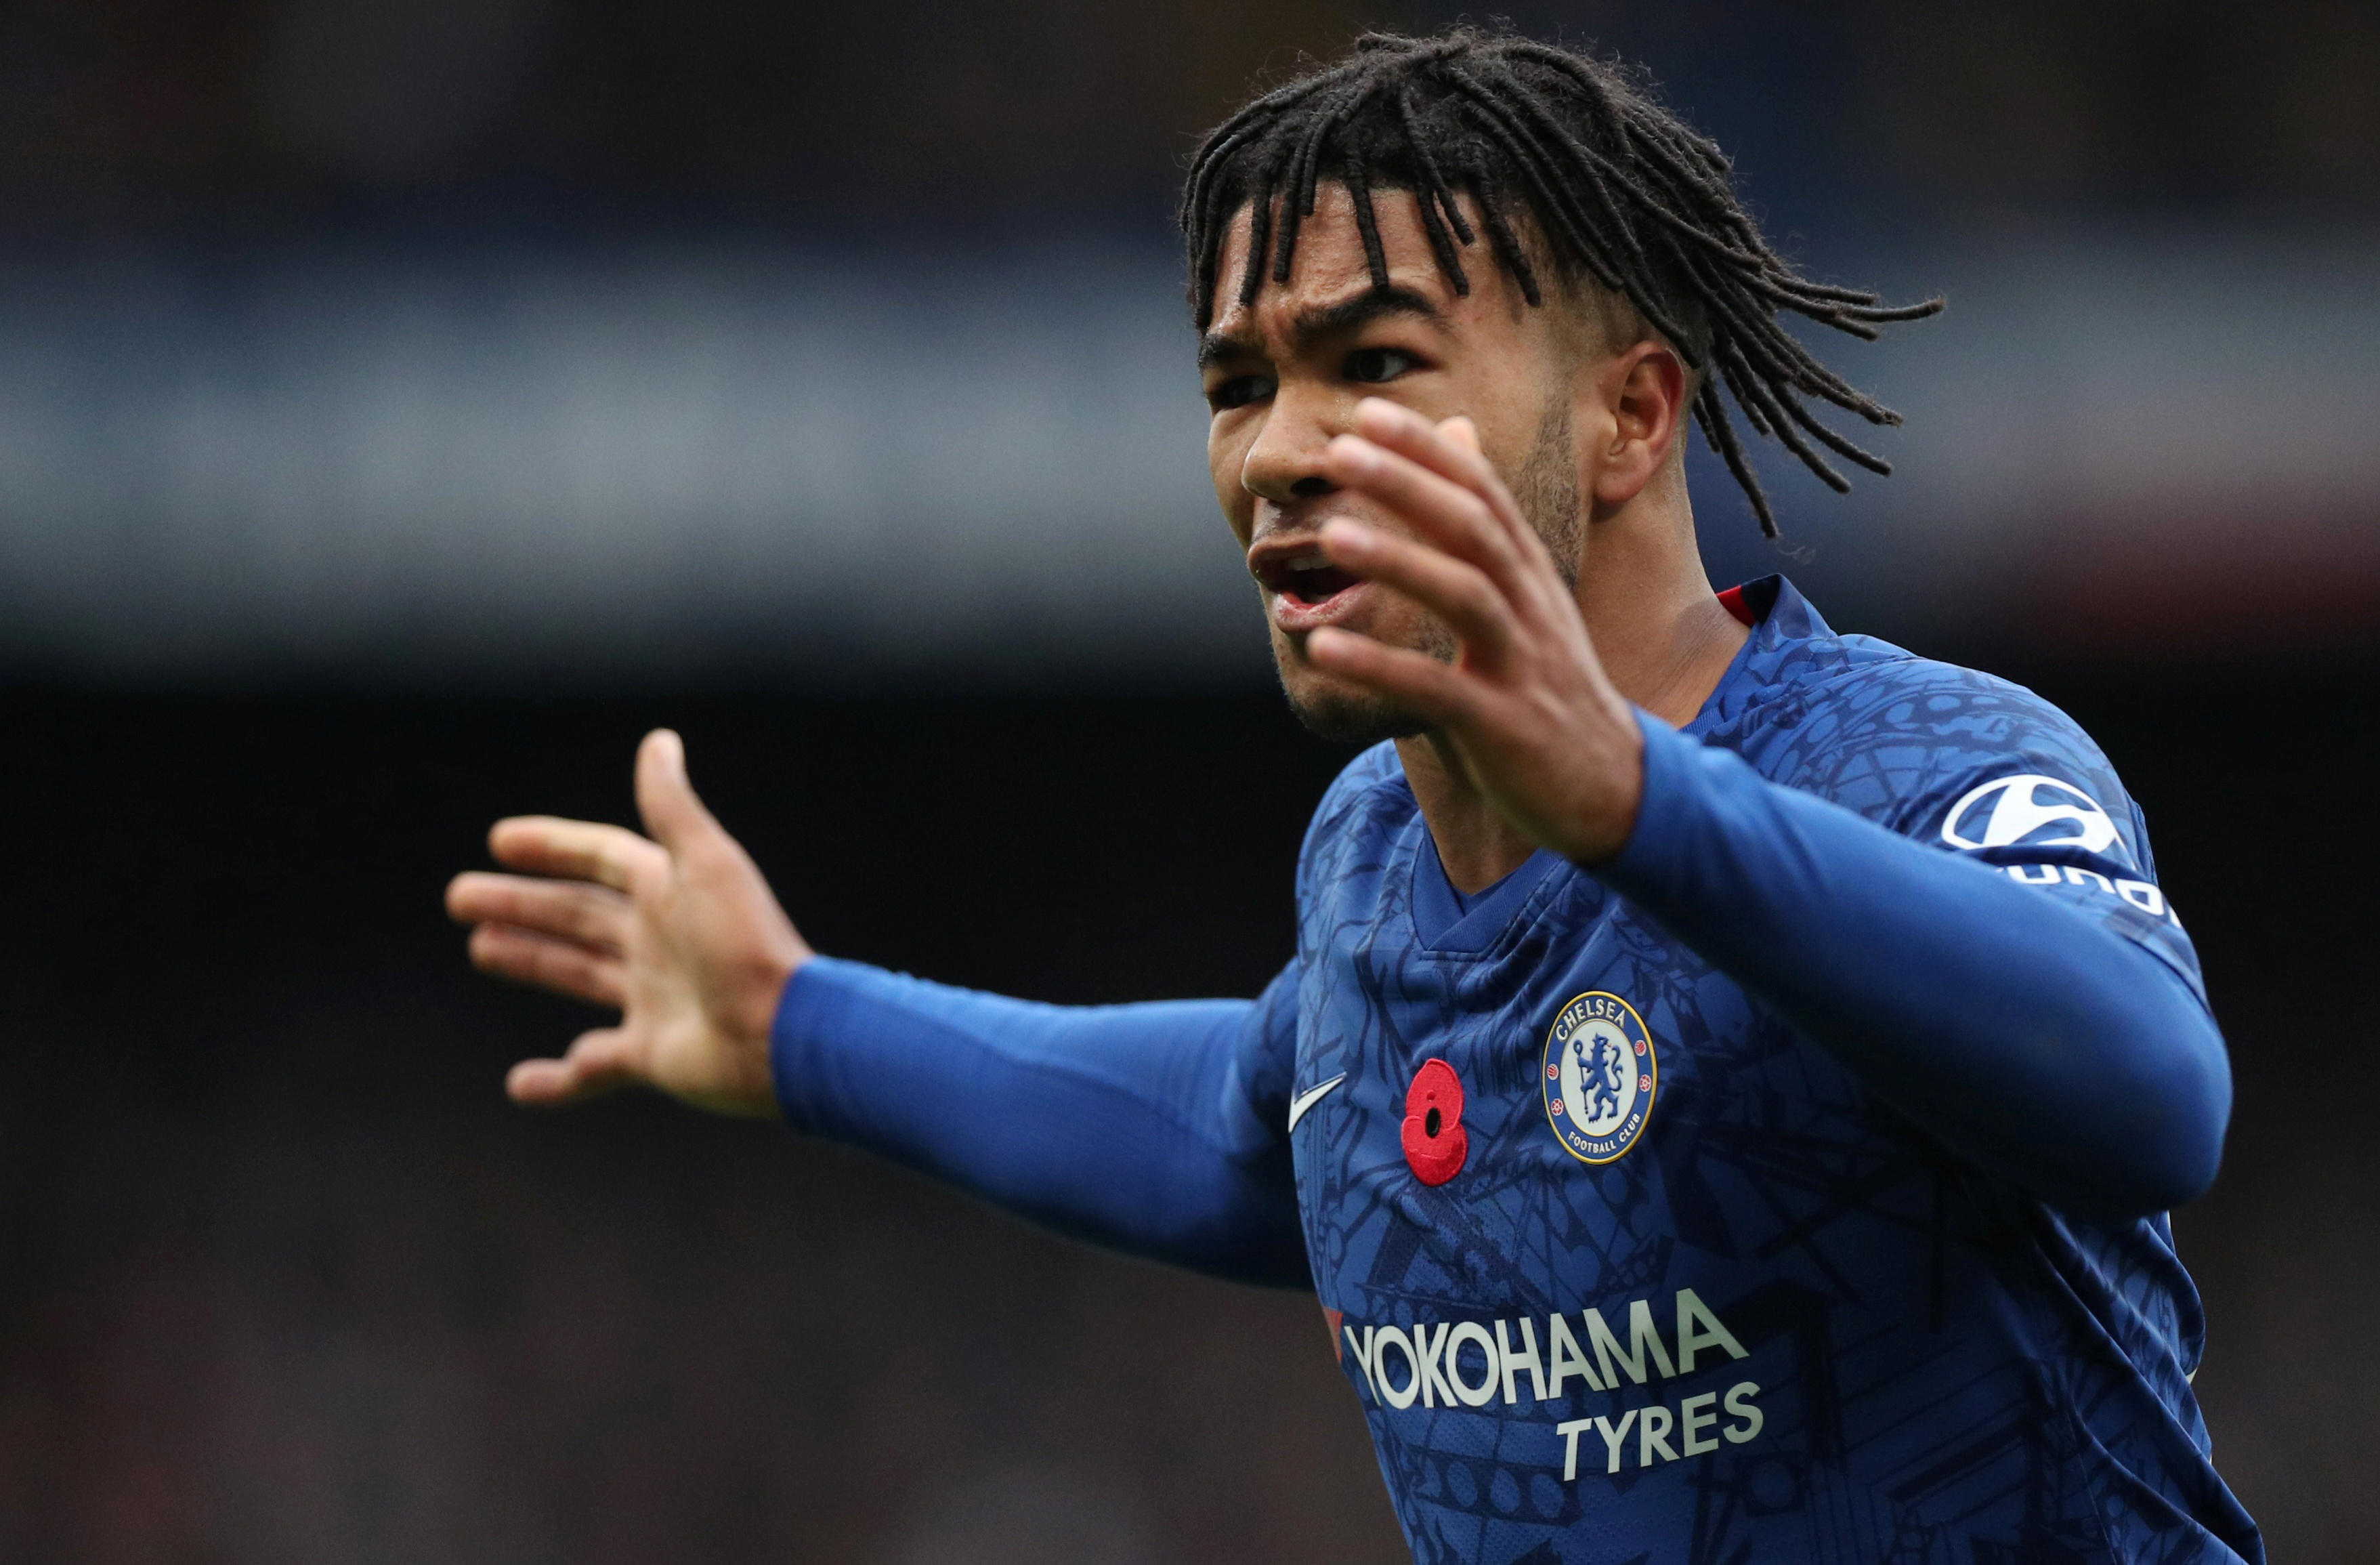 Lampard has special plans for Chelsea star Reece James